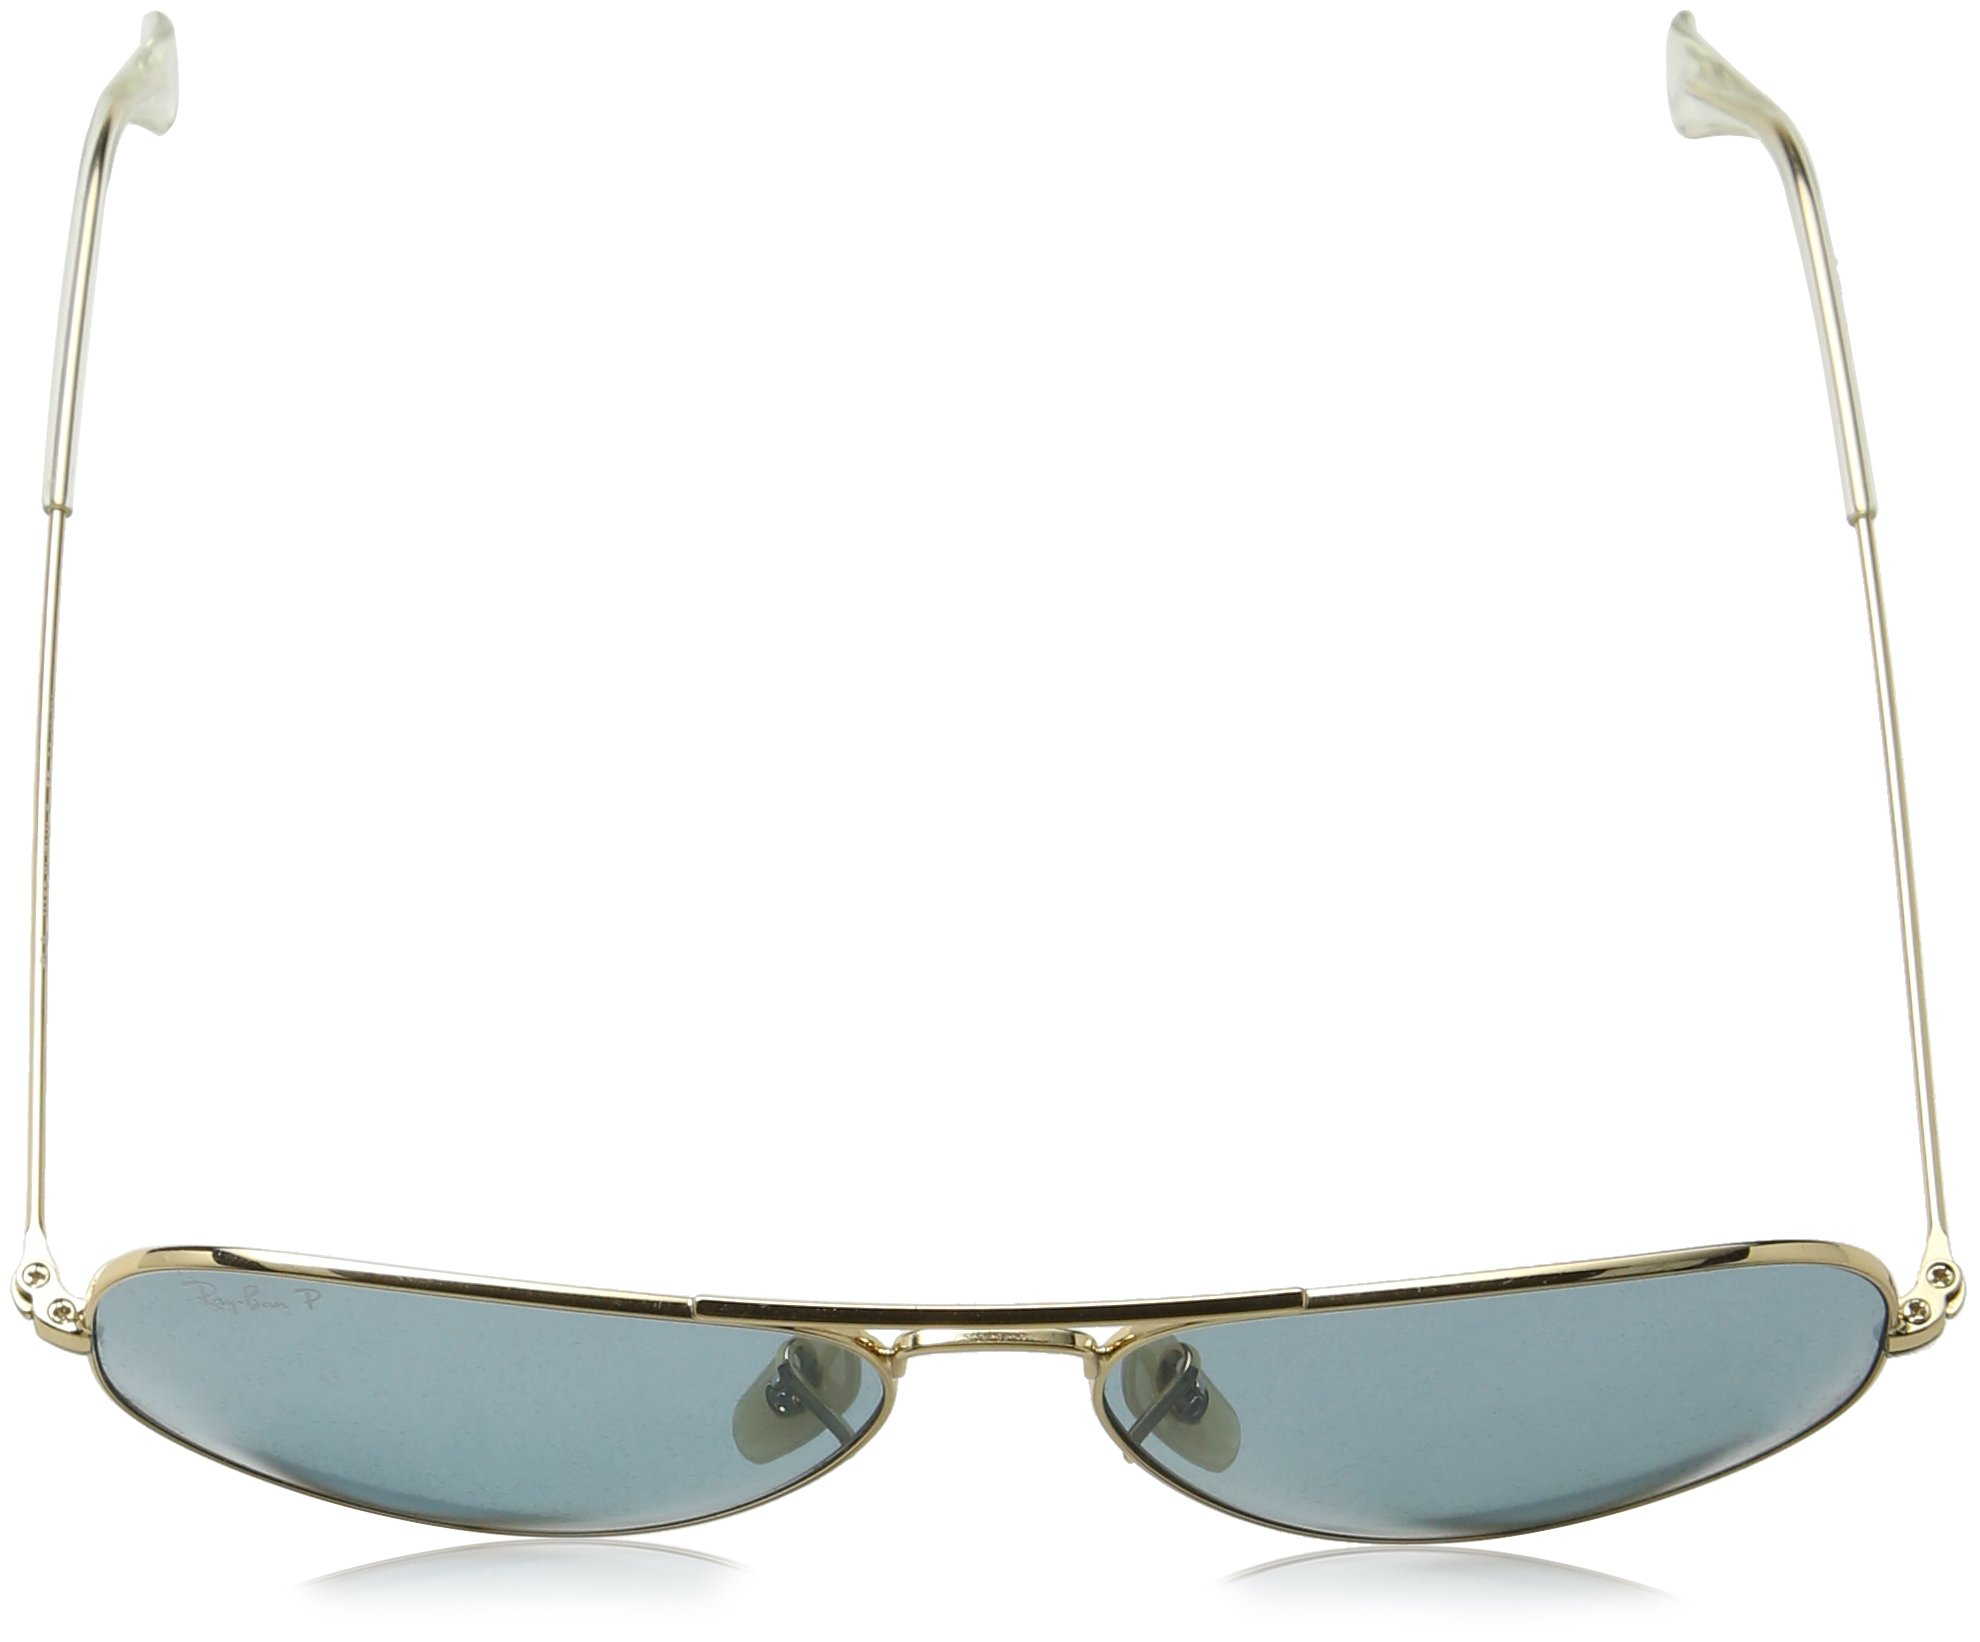 Ray-Ban 3025 Aviator Large Metal Non-Mirrored Polarized Sunglasses, Gold/Green, 55mm by Ray-Ban (Image #5)